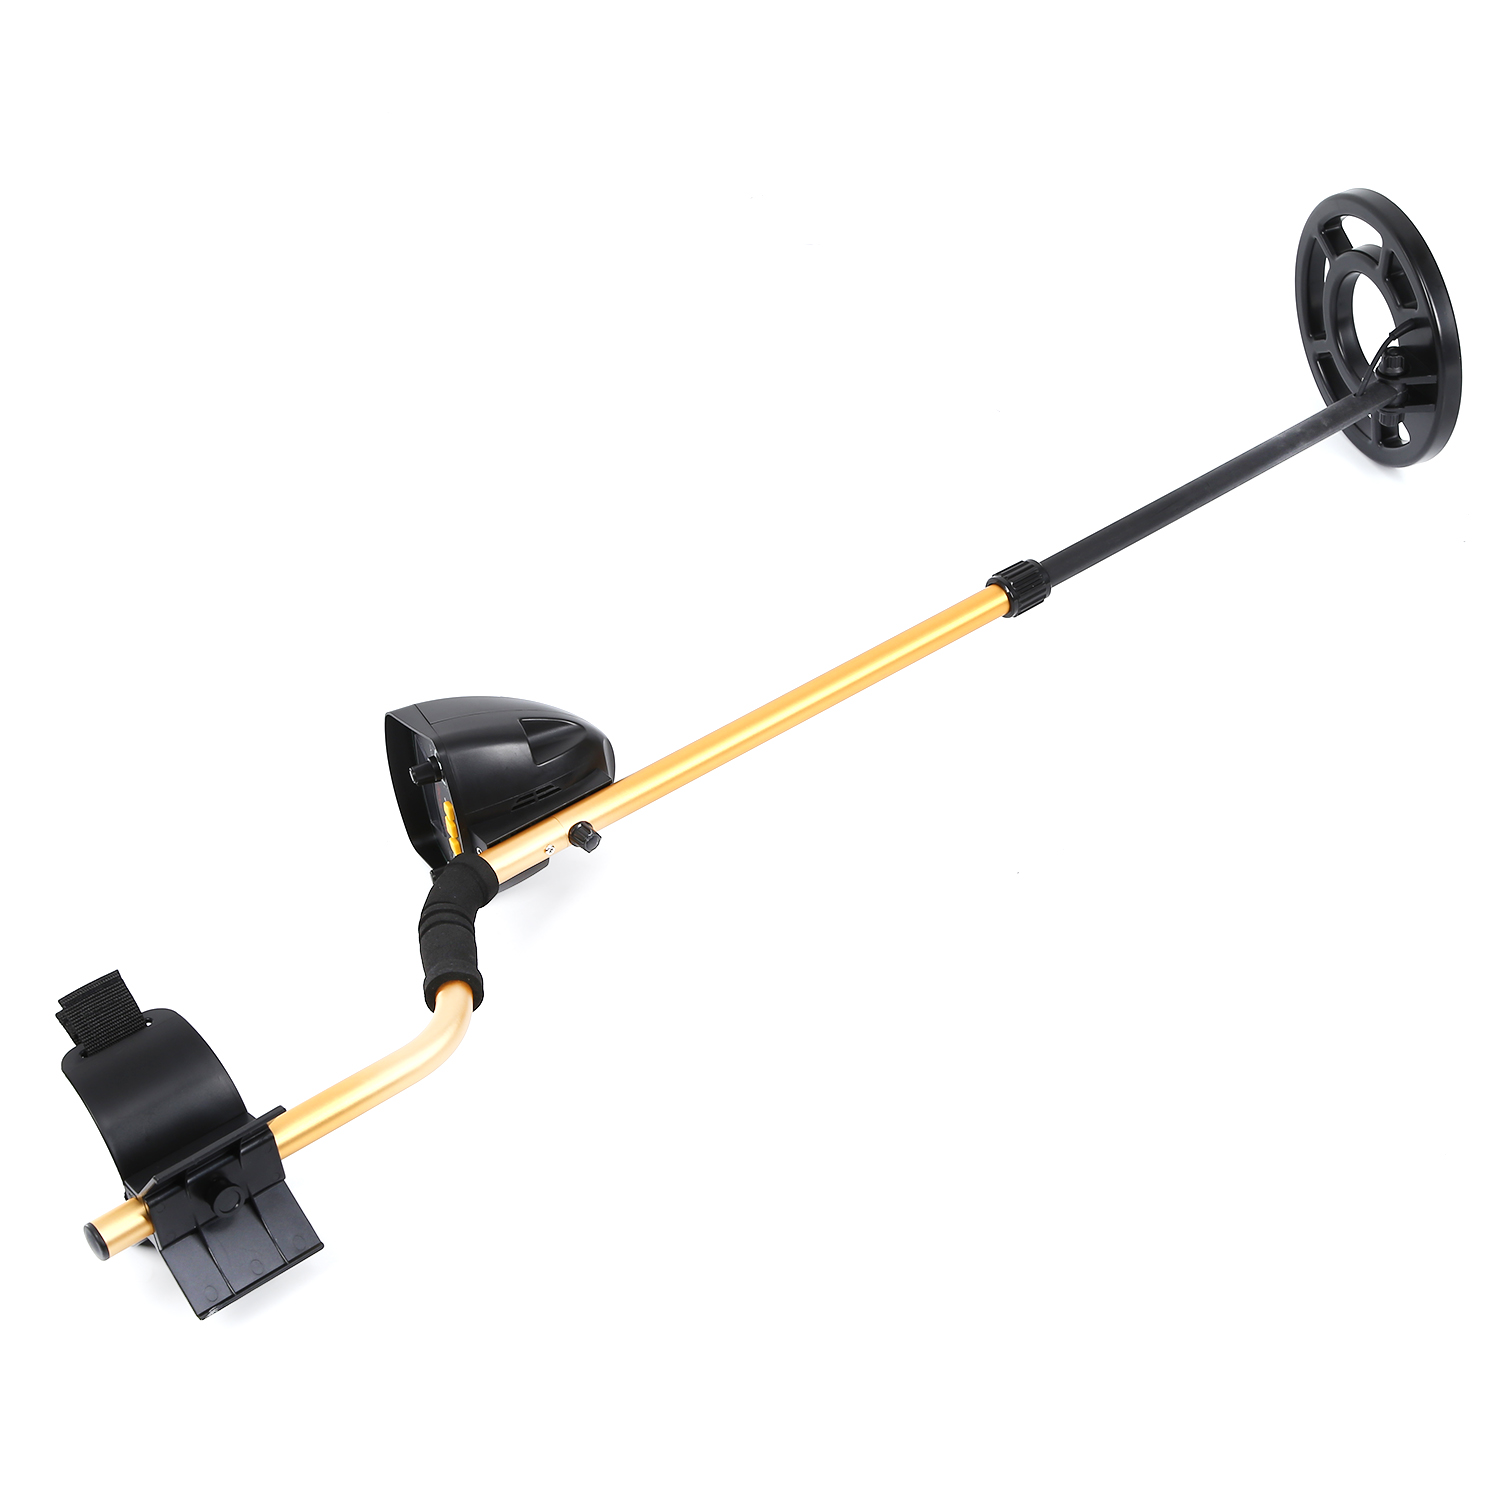 Professional LCD Underground Metal Detector MD3009II Gold Ground Metal Detector MD-3009ii Nugget High Sensitivity Silver Finder kkmoon professional search underground metal detector md3009ii gold metal detector nugget high sensitivity sliver hunter